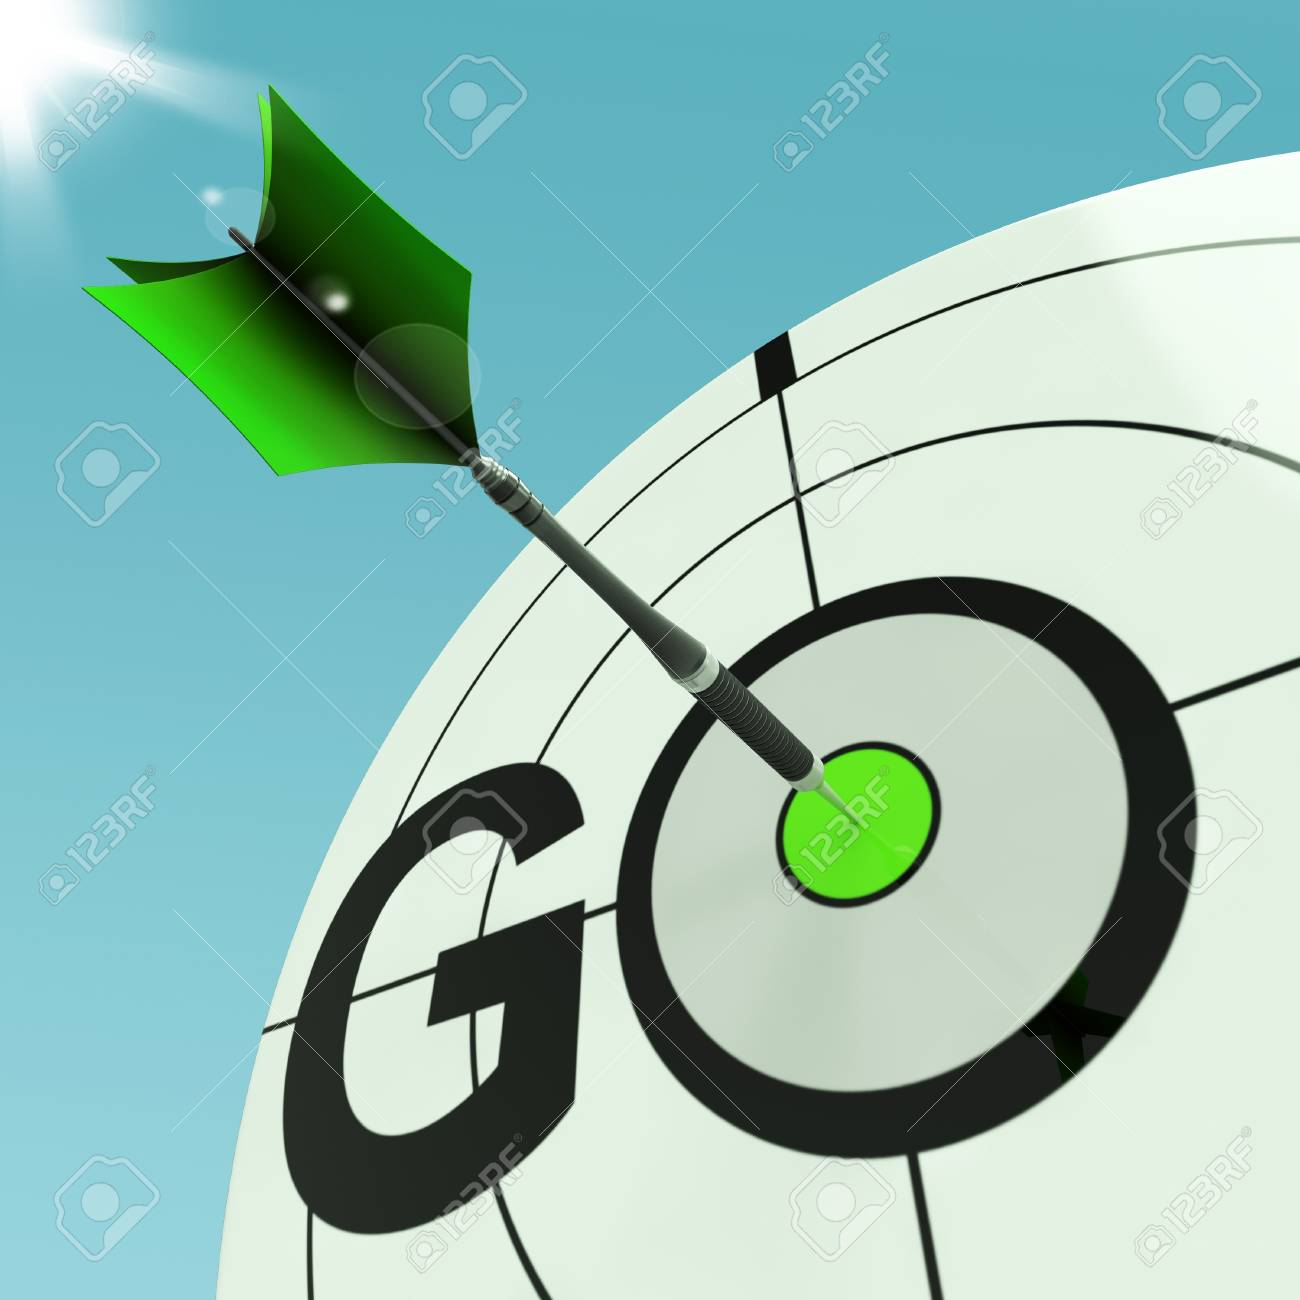 Go Meaning Approved Action To Run Immediately Stock Photo - 18039486